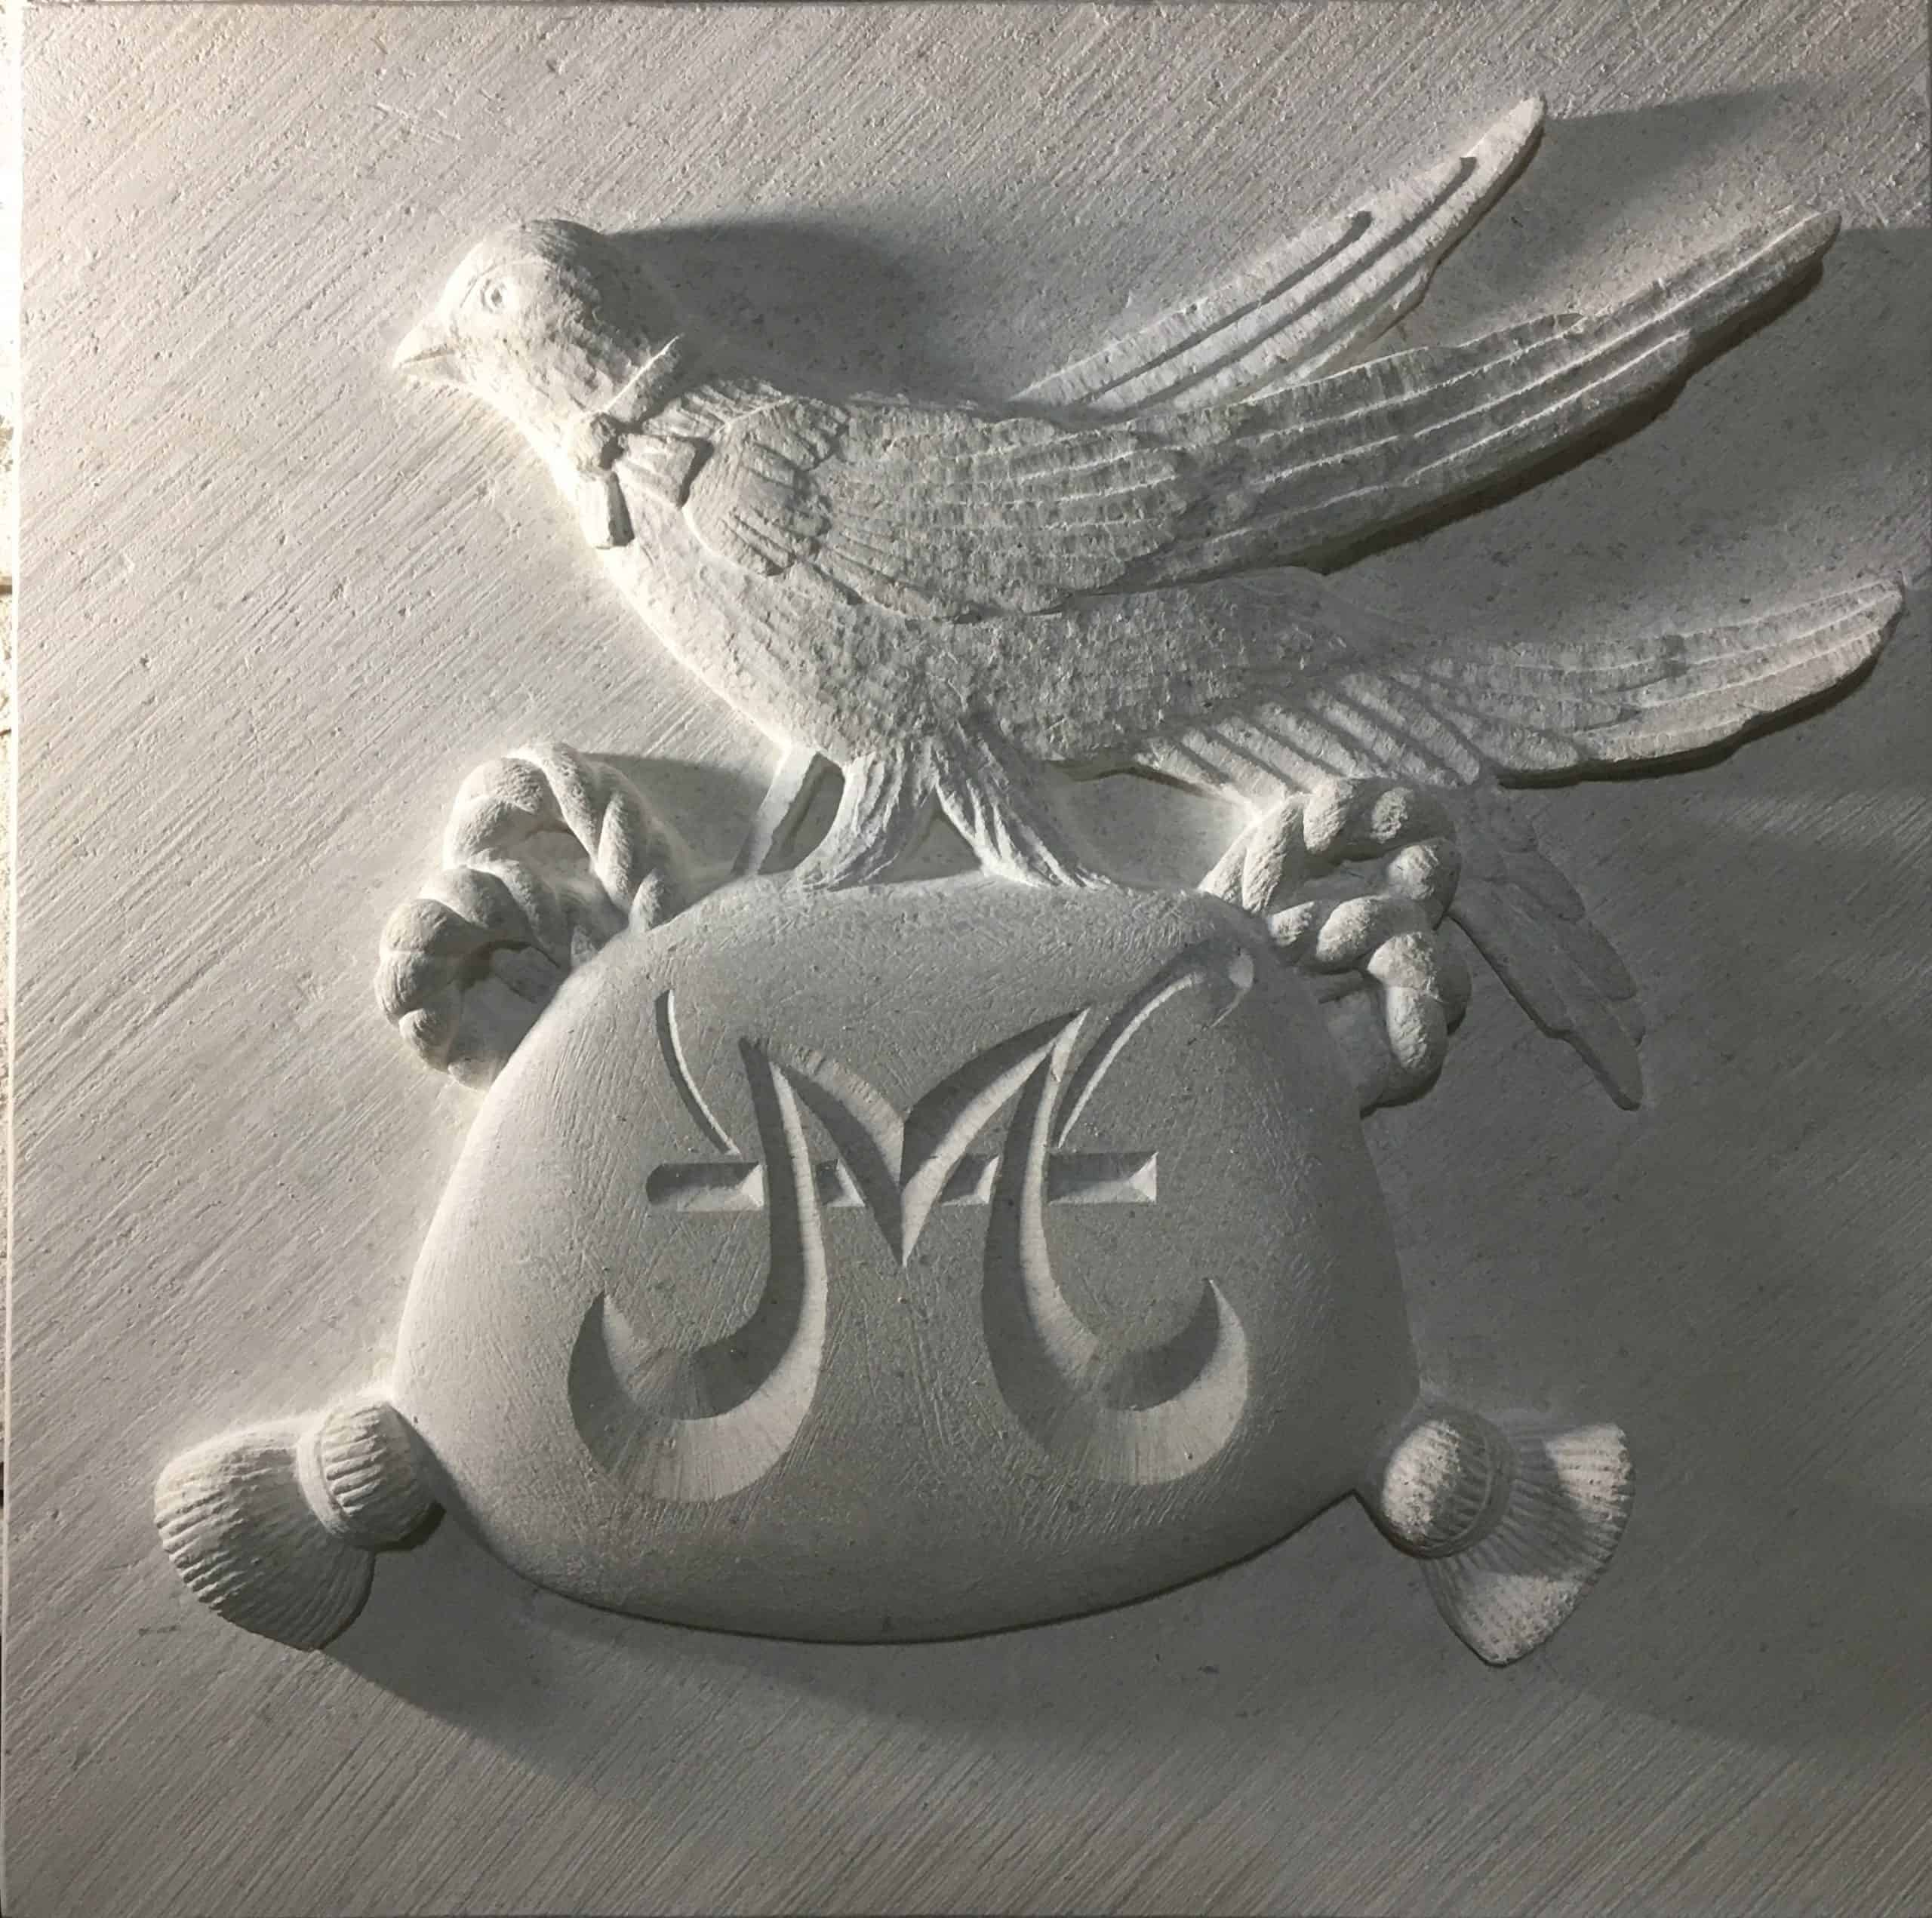 Family crest of a Martlet on top of a purse carved in stone